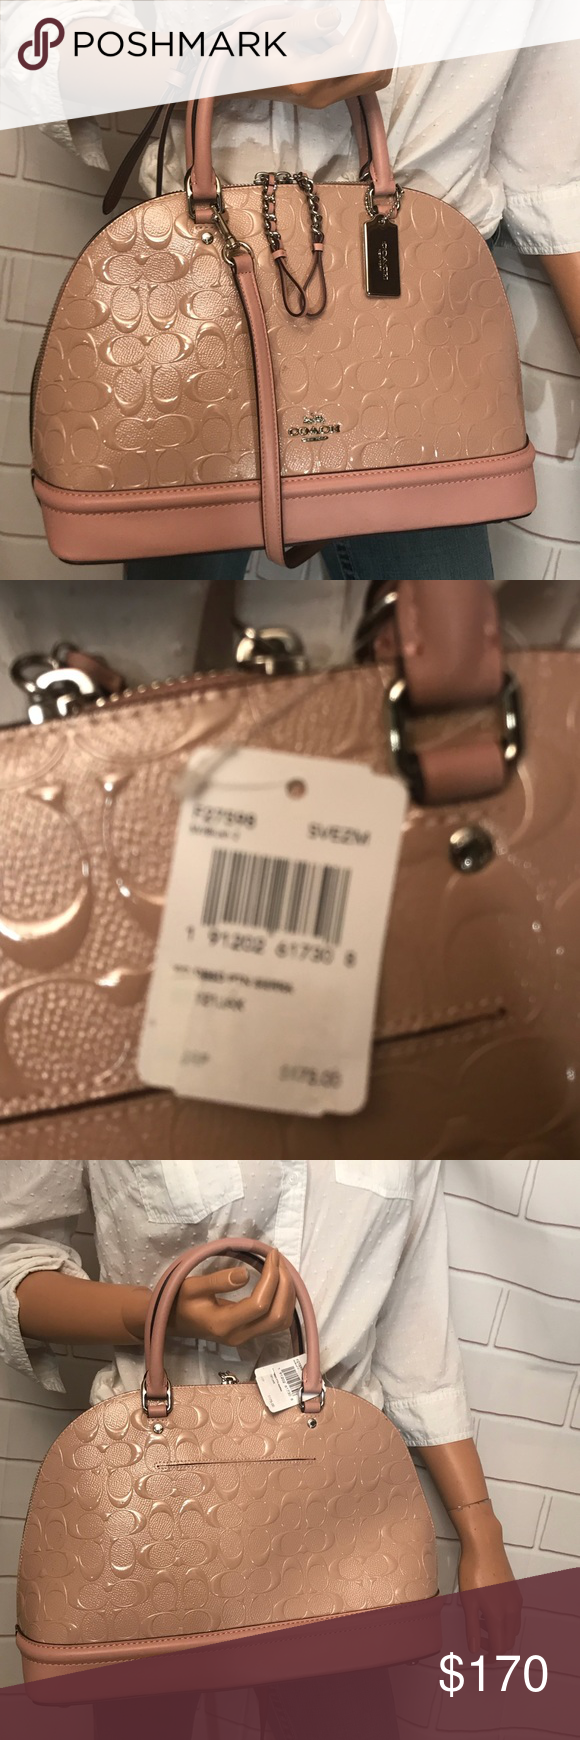 34334934ba47 NWT CoCh Leather Signature Domed Handbag Details Signature debossed patent  leather Inside zip